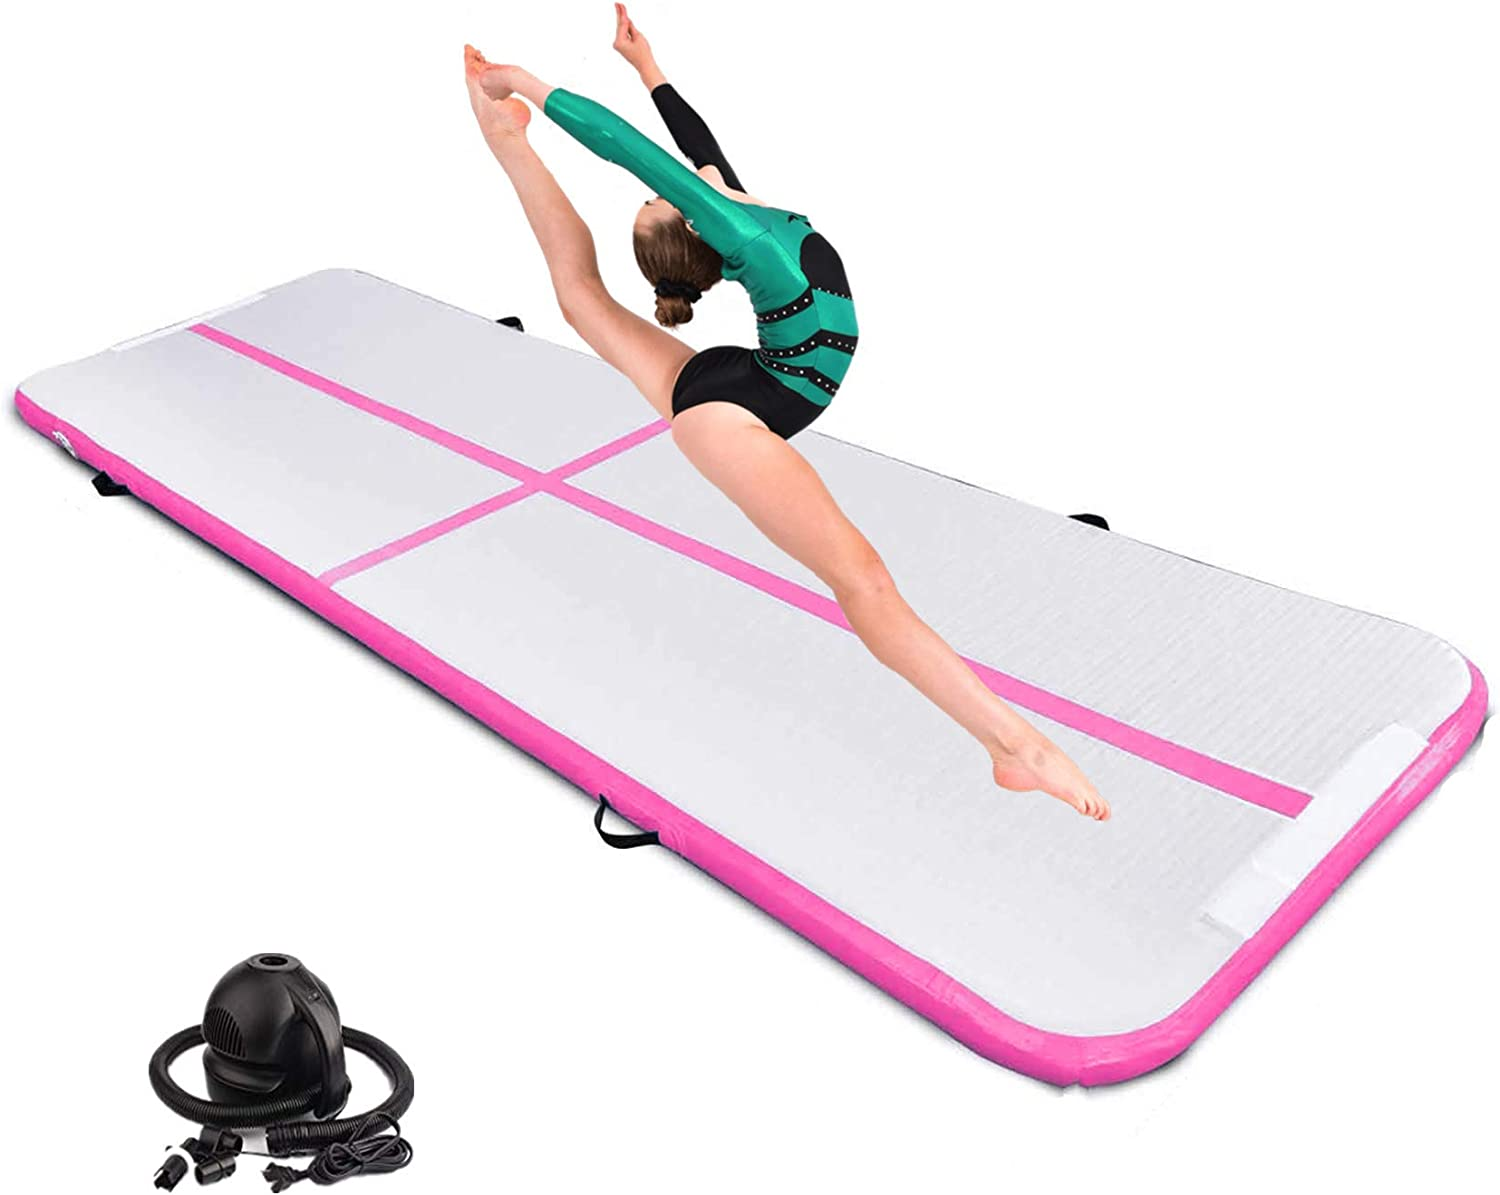 Tumble Track Mat 16ft Inflatable Air Gymnastics Tumbling Mat 4inch Thickness for Home Use/Yoga/Practice Gymnastics/Water with Electric Pump(Pink)